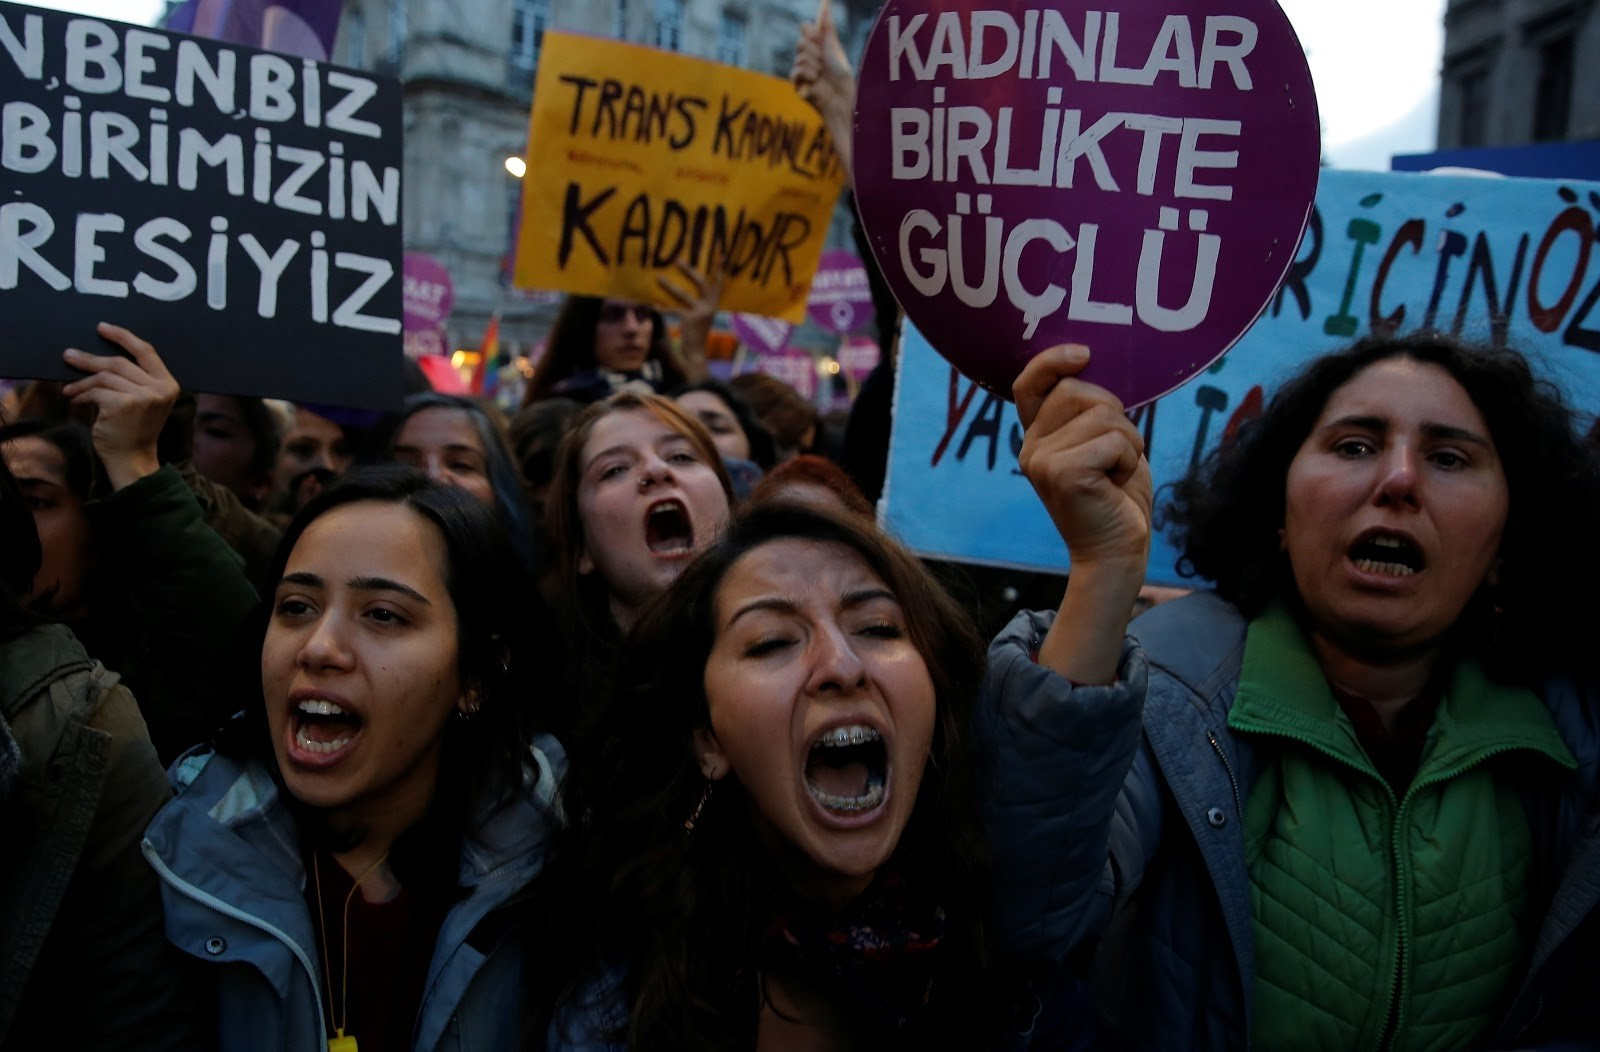 Women's rights activists march through Istanbul's Taksim Square to protest against gender violence.